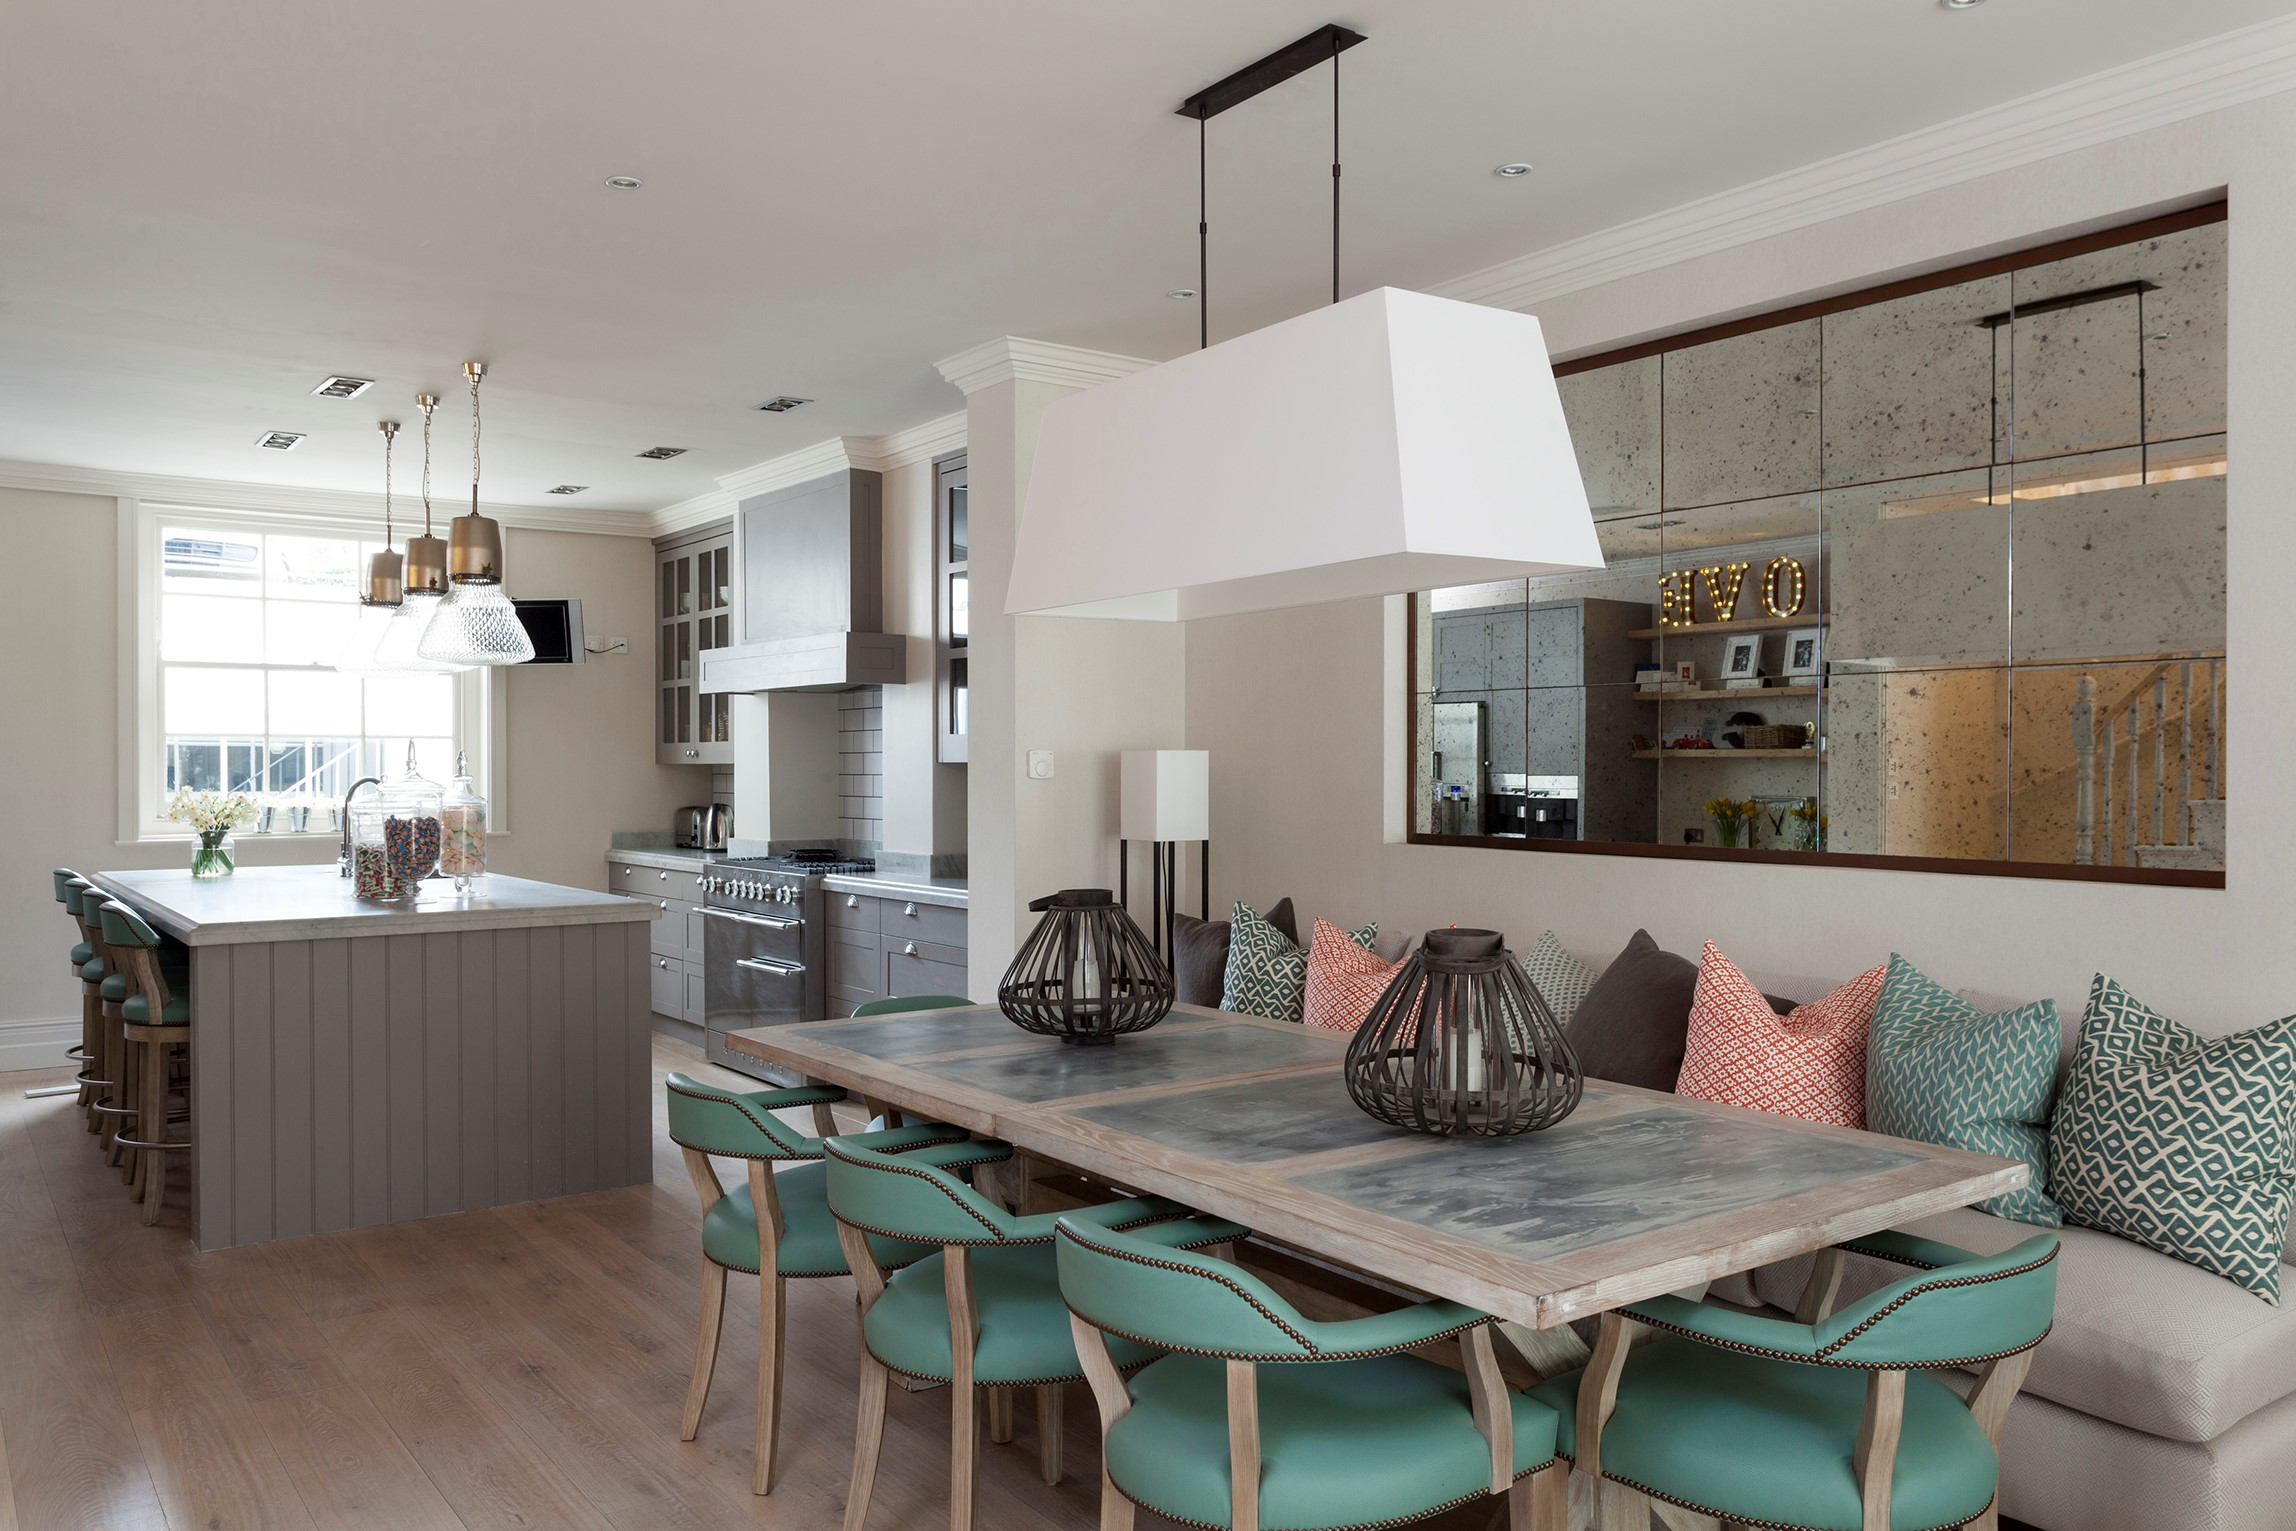 Sophisticated House in Central London with BRABBU´s Armchairs sophisticated houseSophisticated House in Central London with BRABBU´s ArmchairsMelissa and Miller Interiors 6